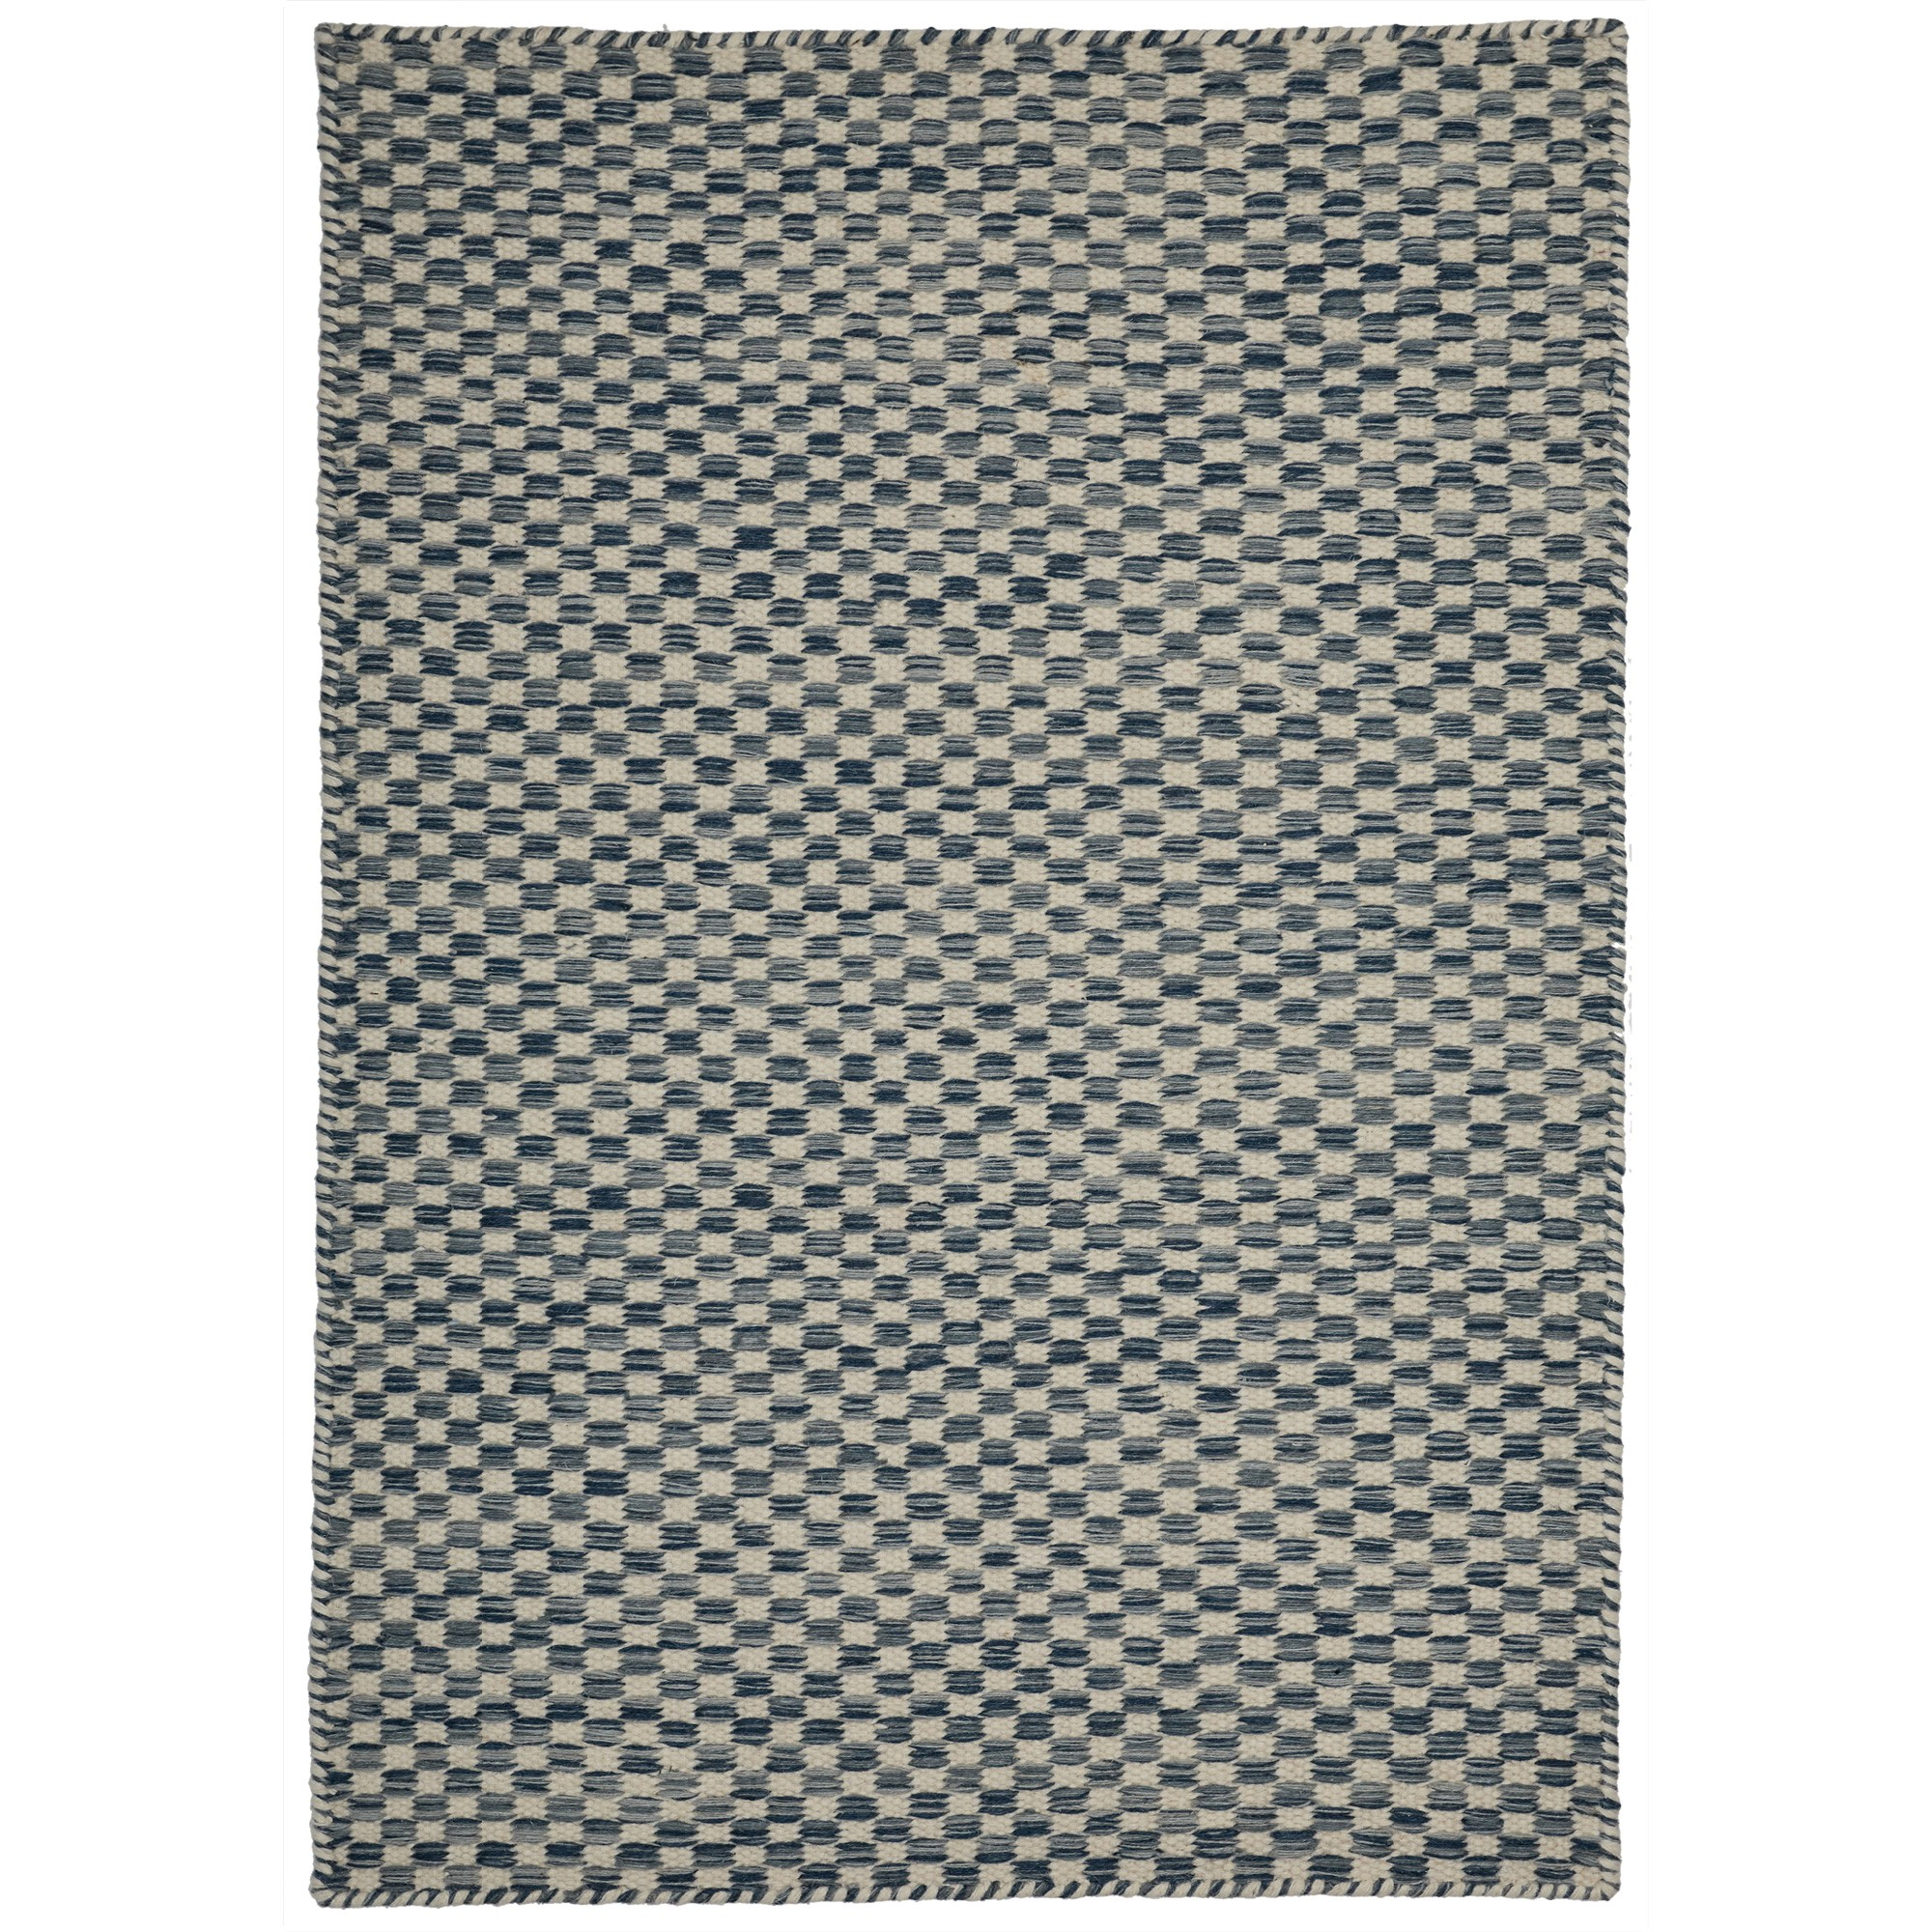 Madrid Handcrafted Modern Wool Rug, 330x240cm, Blue / Ivory